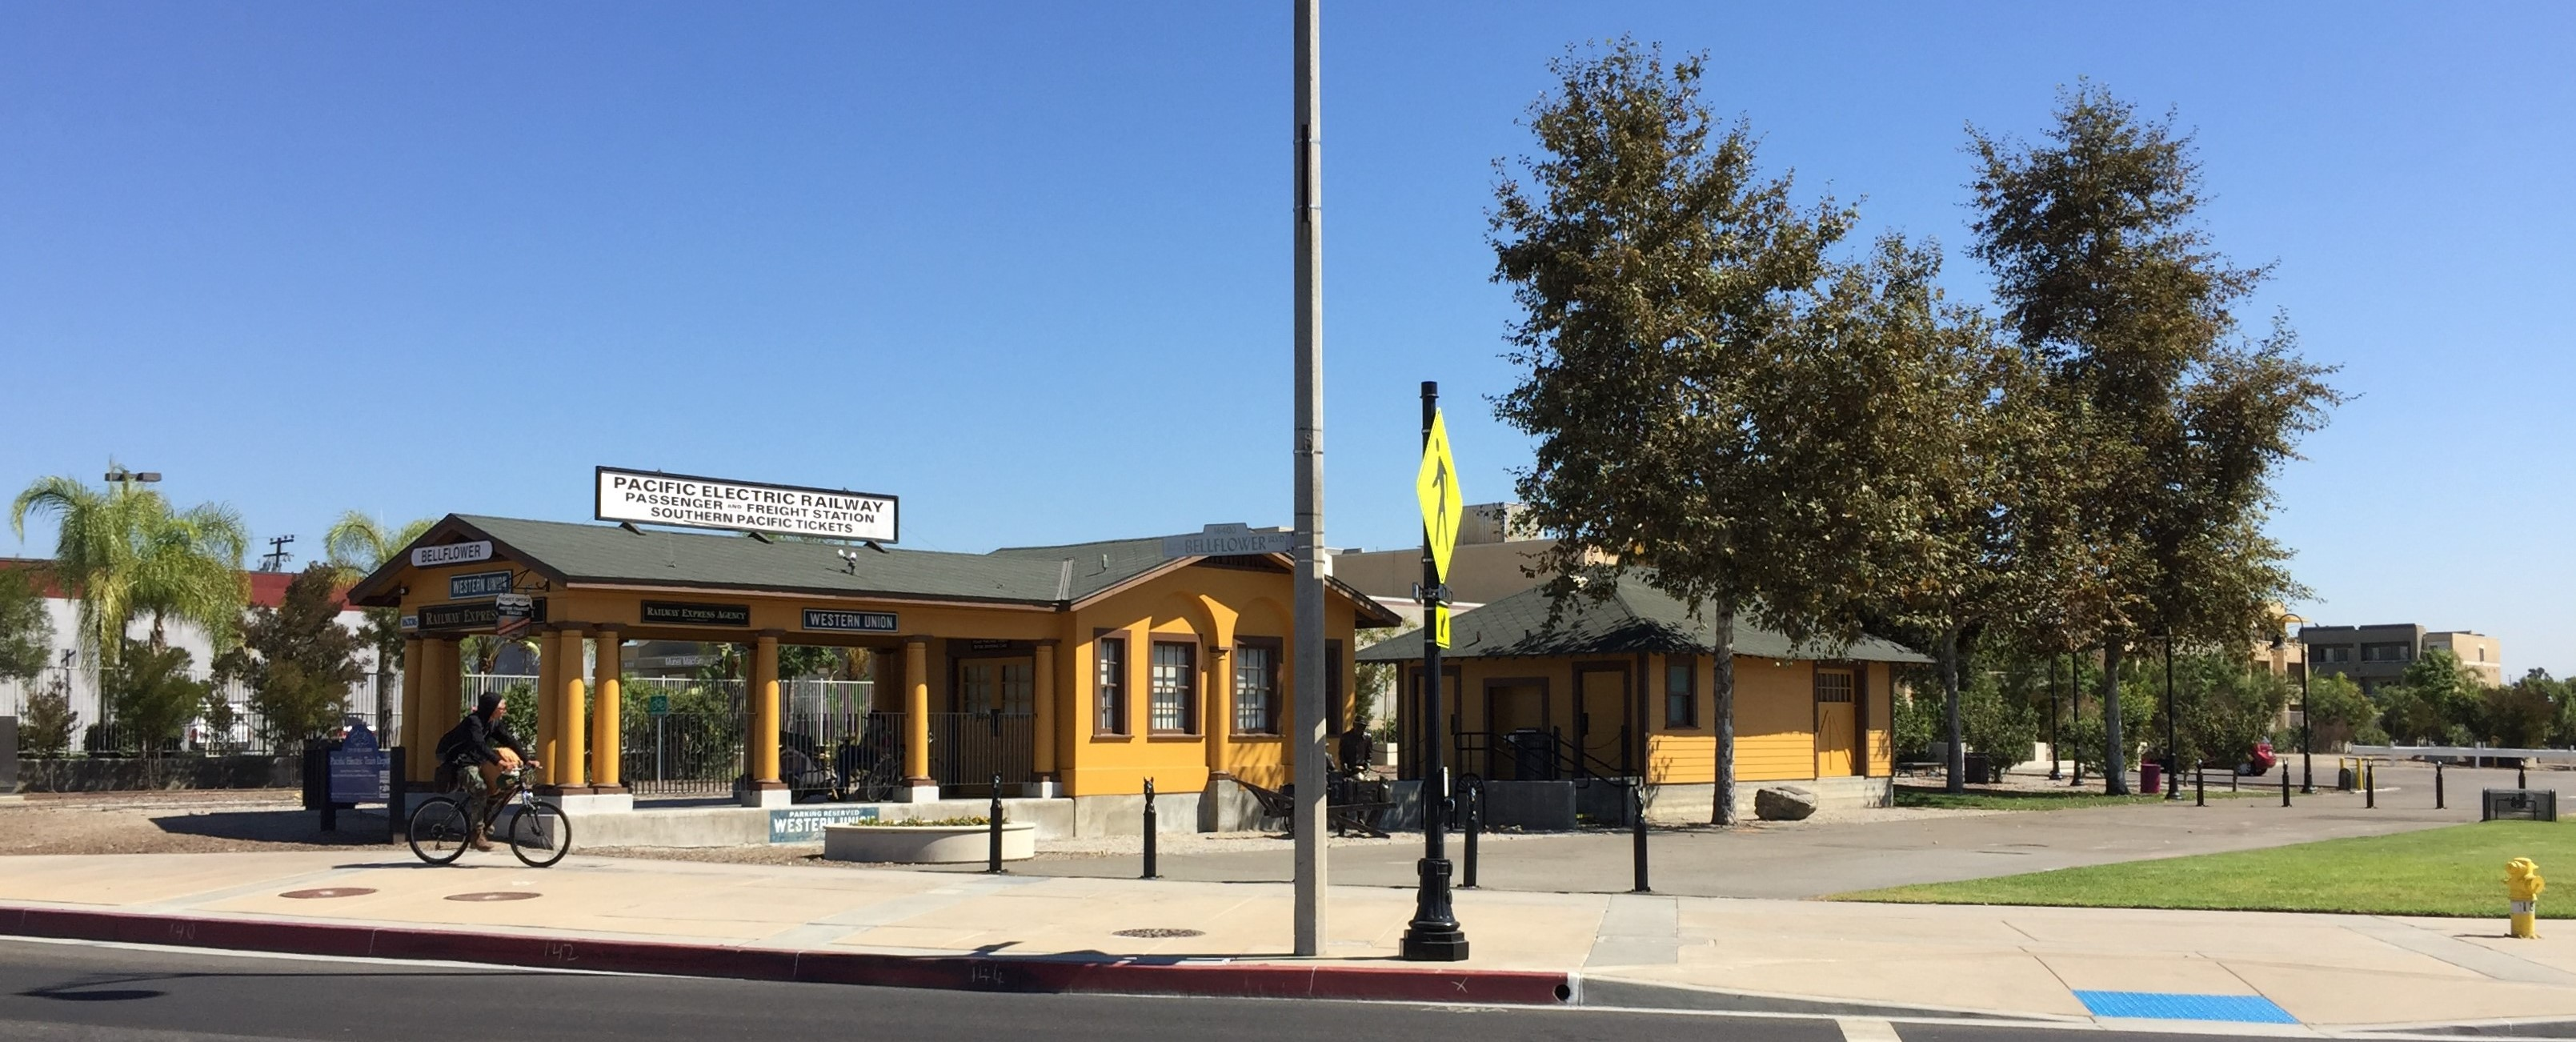 The historic PE West Santa Ana Branch railway station still stands in Bellflower. Photos by Joe Linton/Streetsblog L.A.